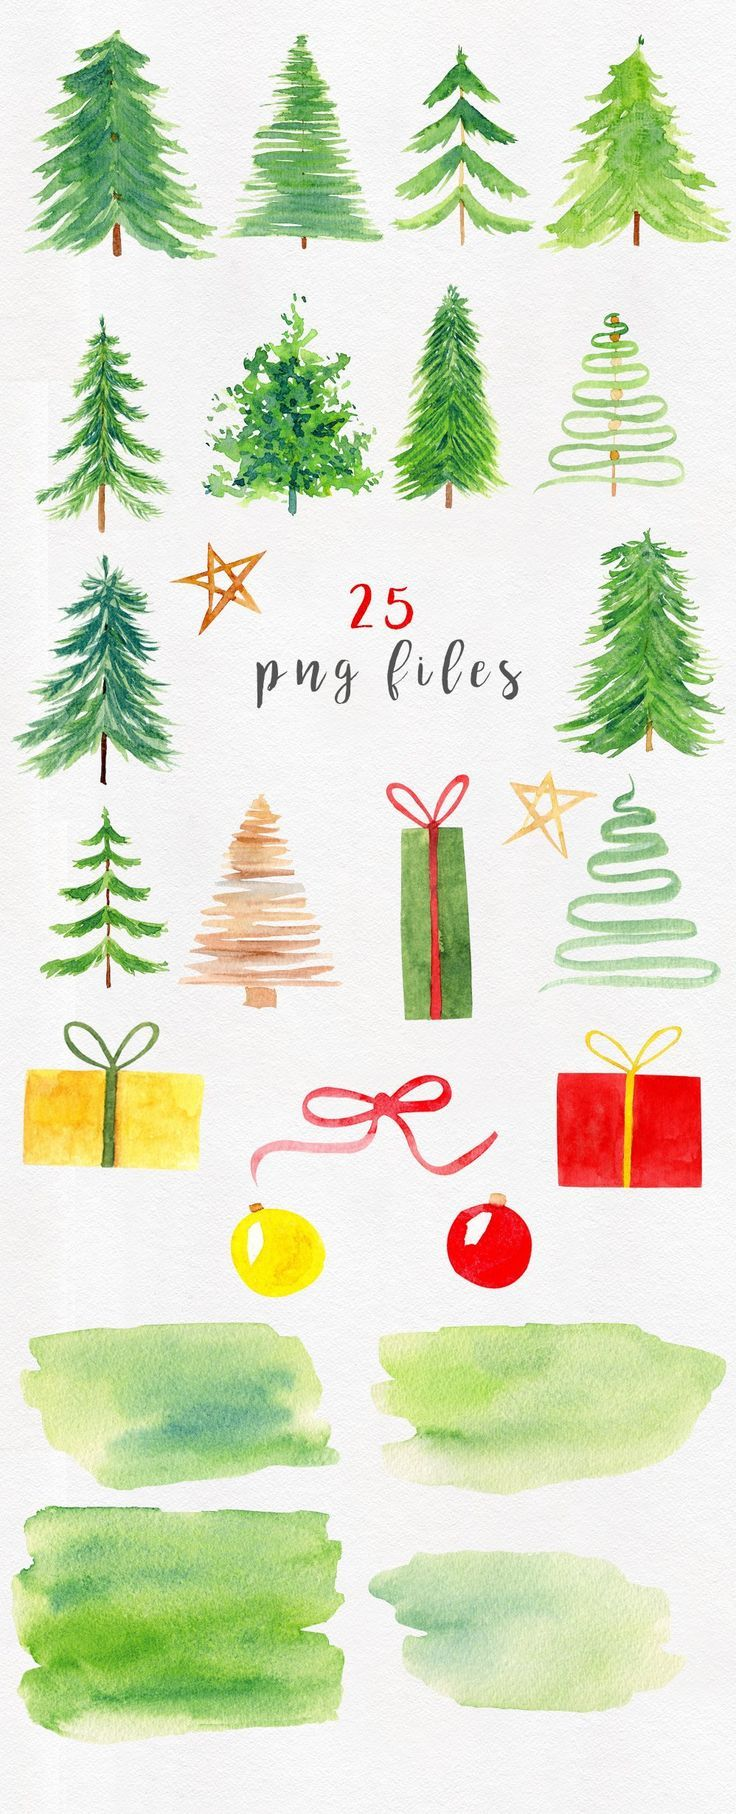 26 Watercolor Christmas Clipart Watercolor Christmas Trees Holiday Clip Art Decorations Green Clipart Greeting Watercolor Christmas Tree Christmas Watercolor Holiday Clipart